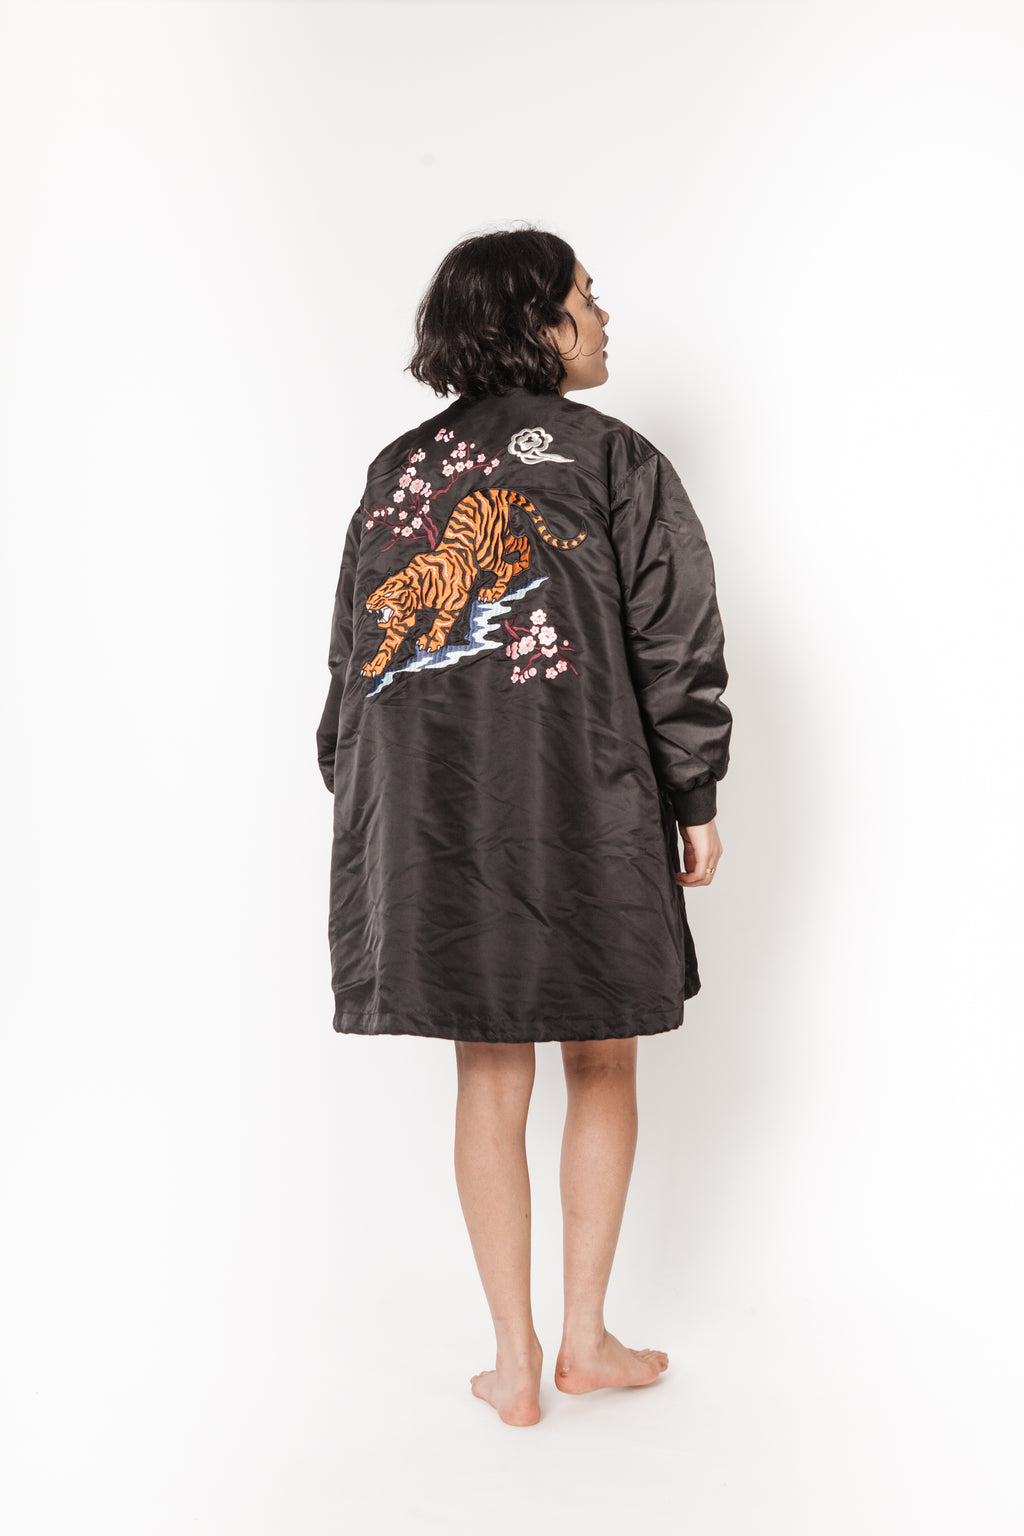 La Bete rabbit lined parka with tiger embroidery